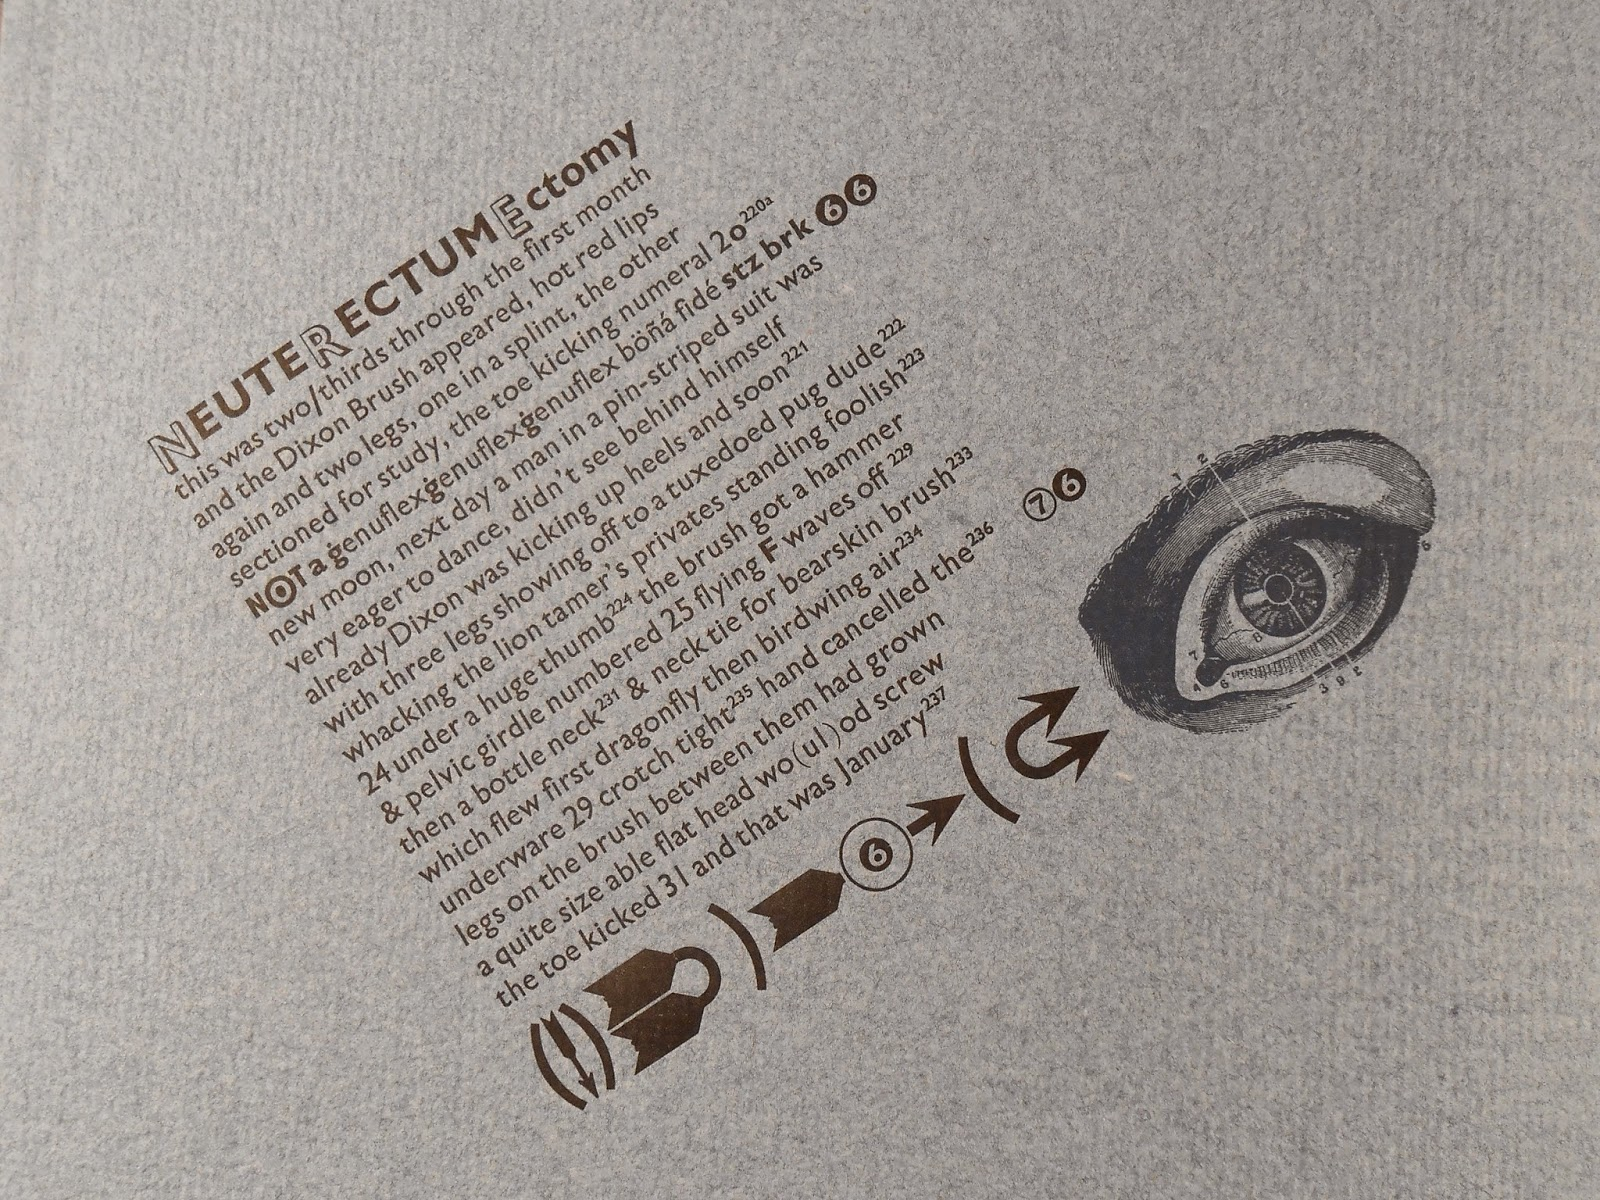 A page bearing an angled block of text and an image of eye.